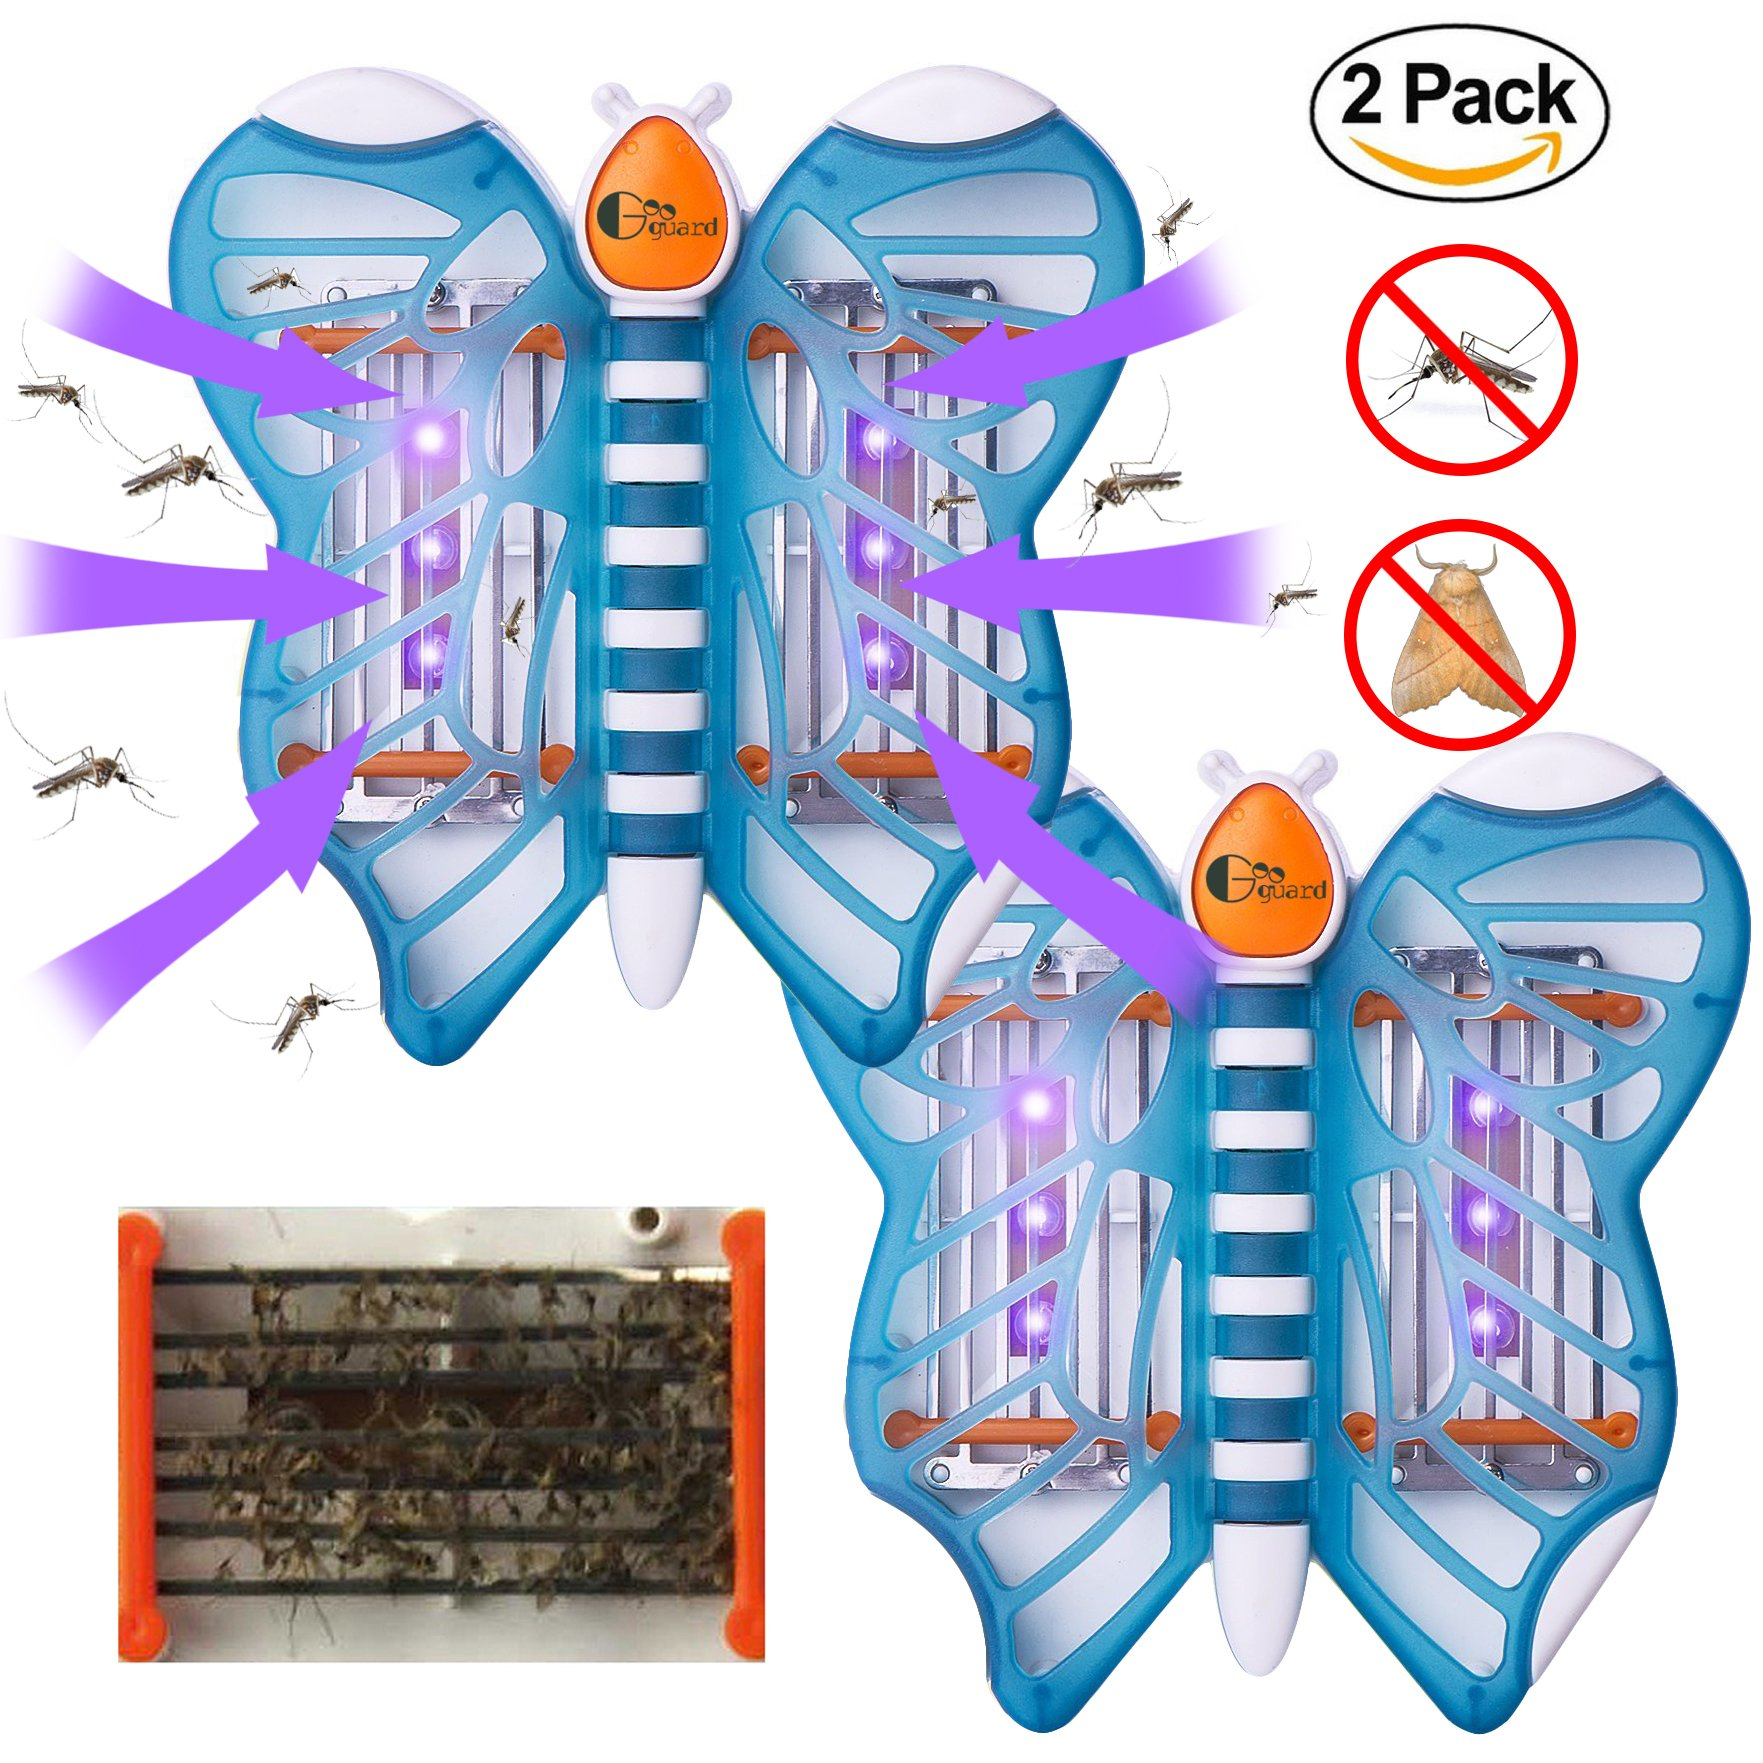 Googuard Mosquito Killer Lamp Bug Zapper Moth Trap Electronic Plug LED UV Light Pest Insect Control Mute Non-toxic Non-radiative 2 Pack